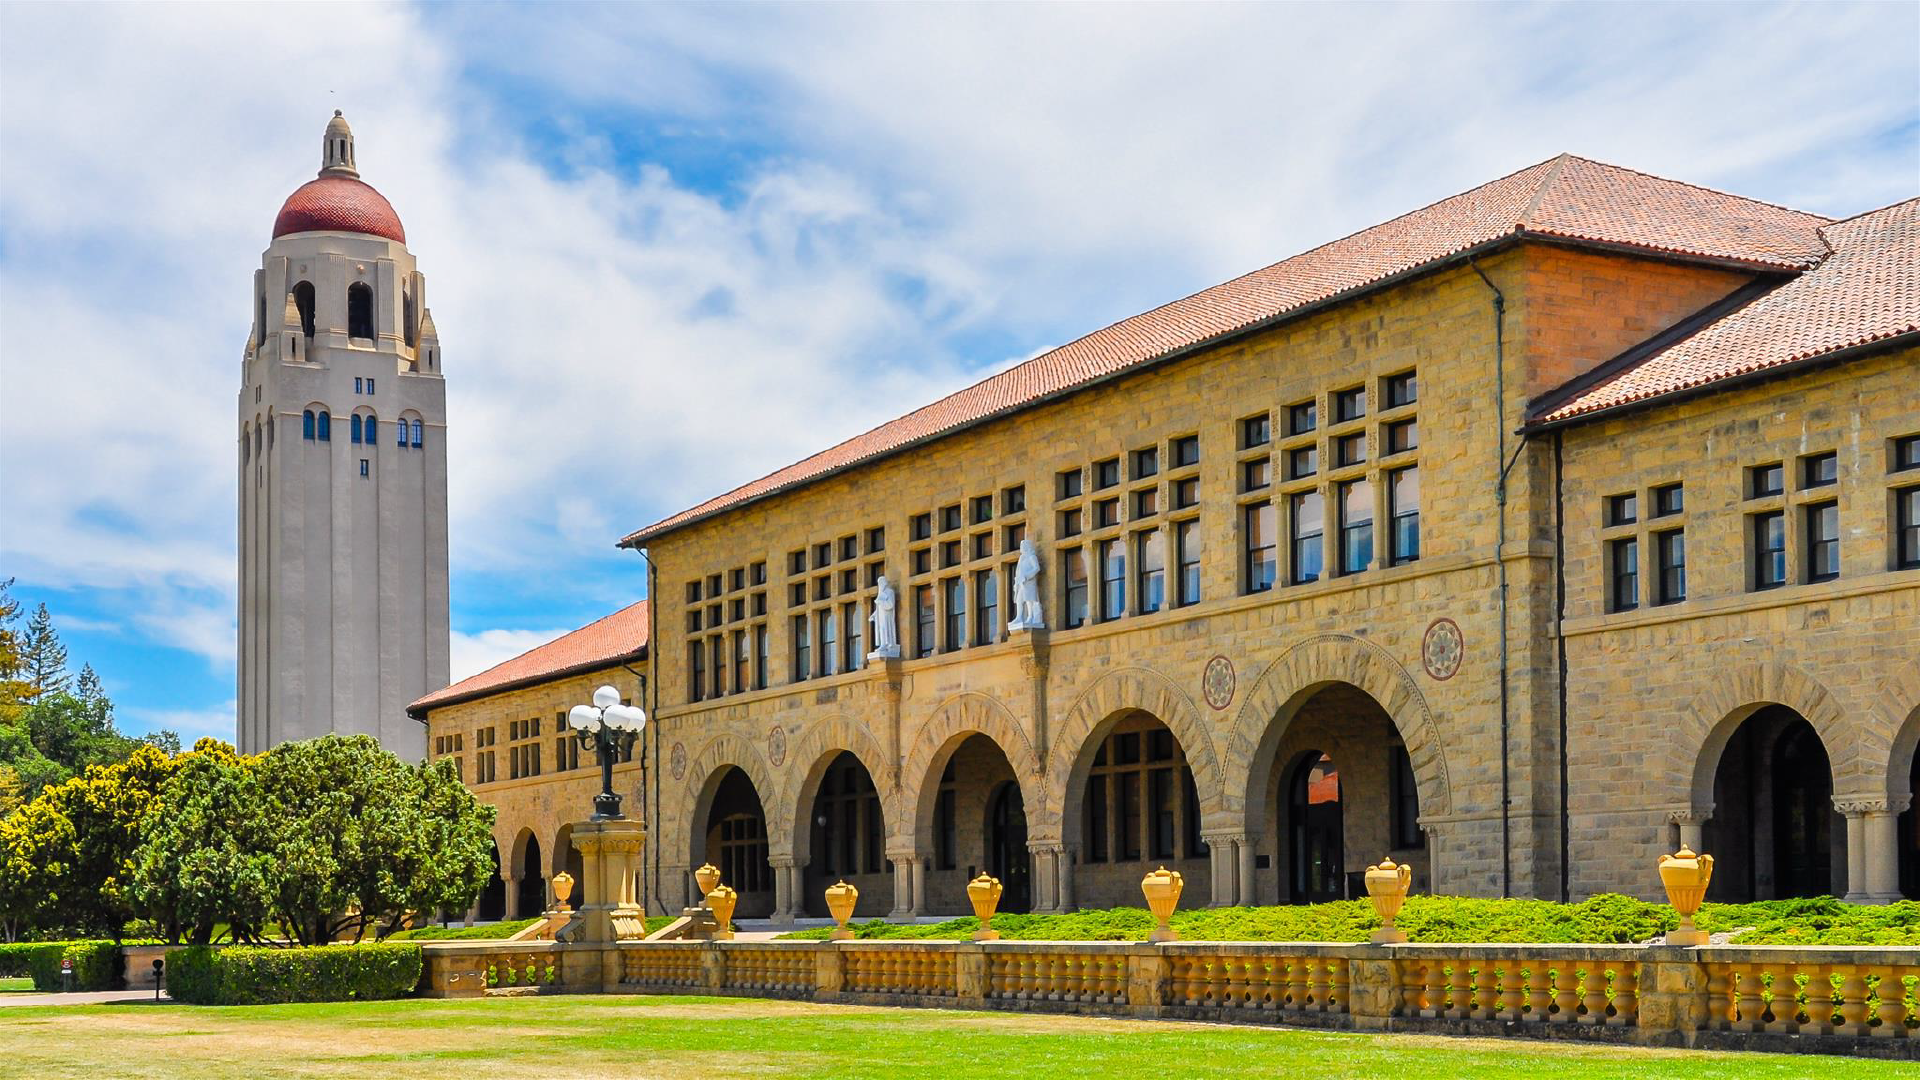 Stanford Campus tour - Guided campus tour led by students currently attending the university. Explore the campus and learn more about Stanford's rich history, distinctive architecture, and notable landmarks.